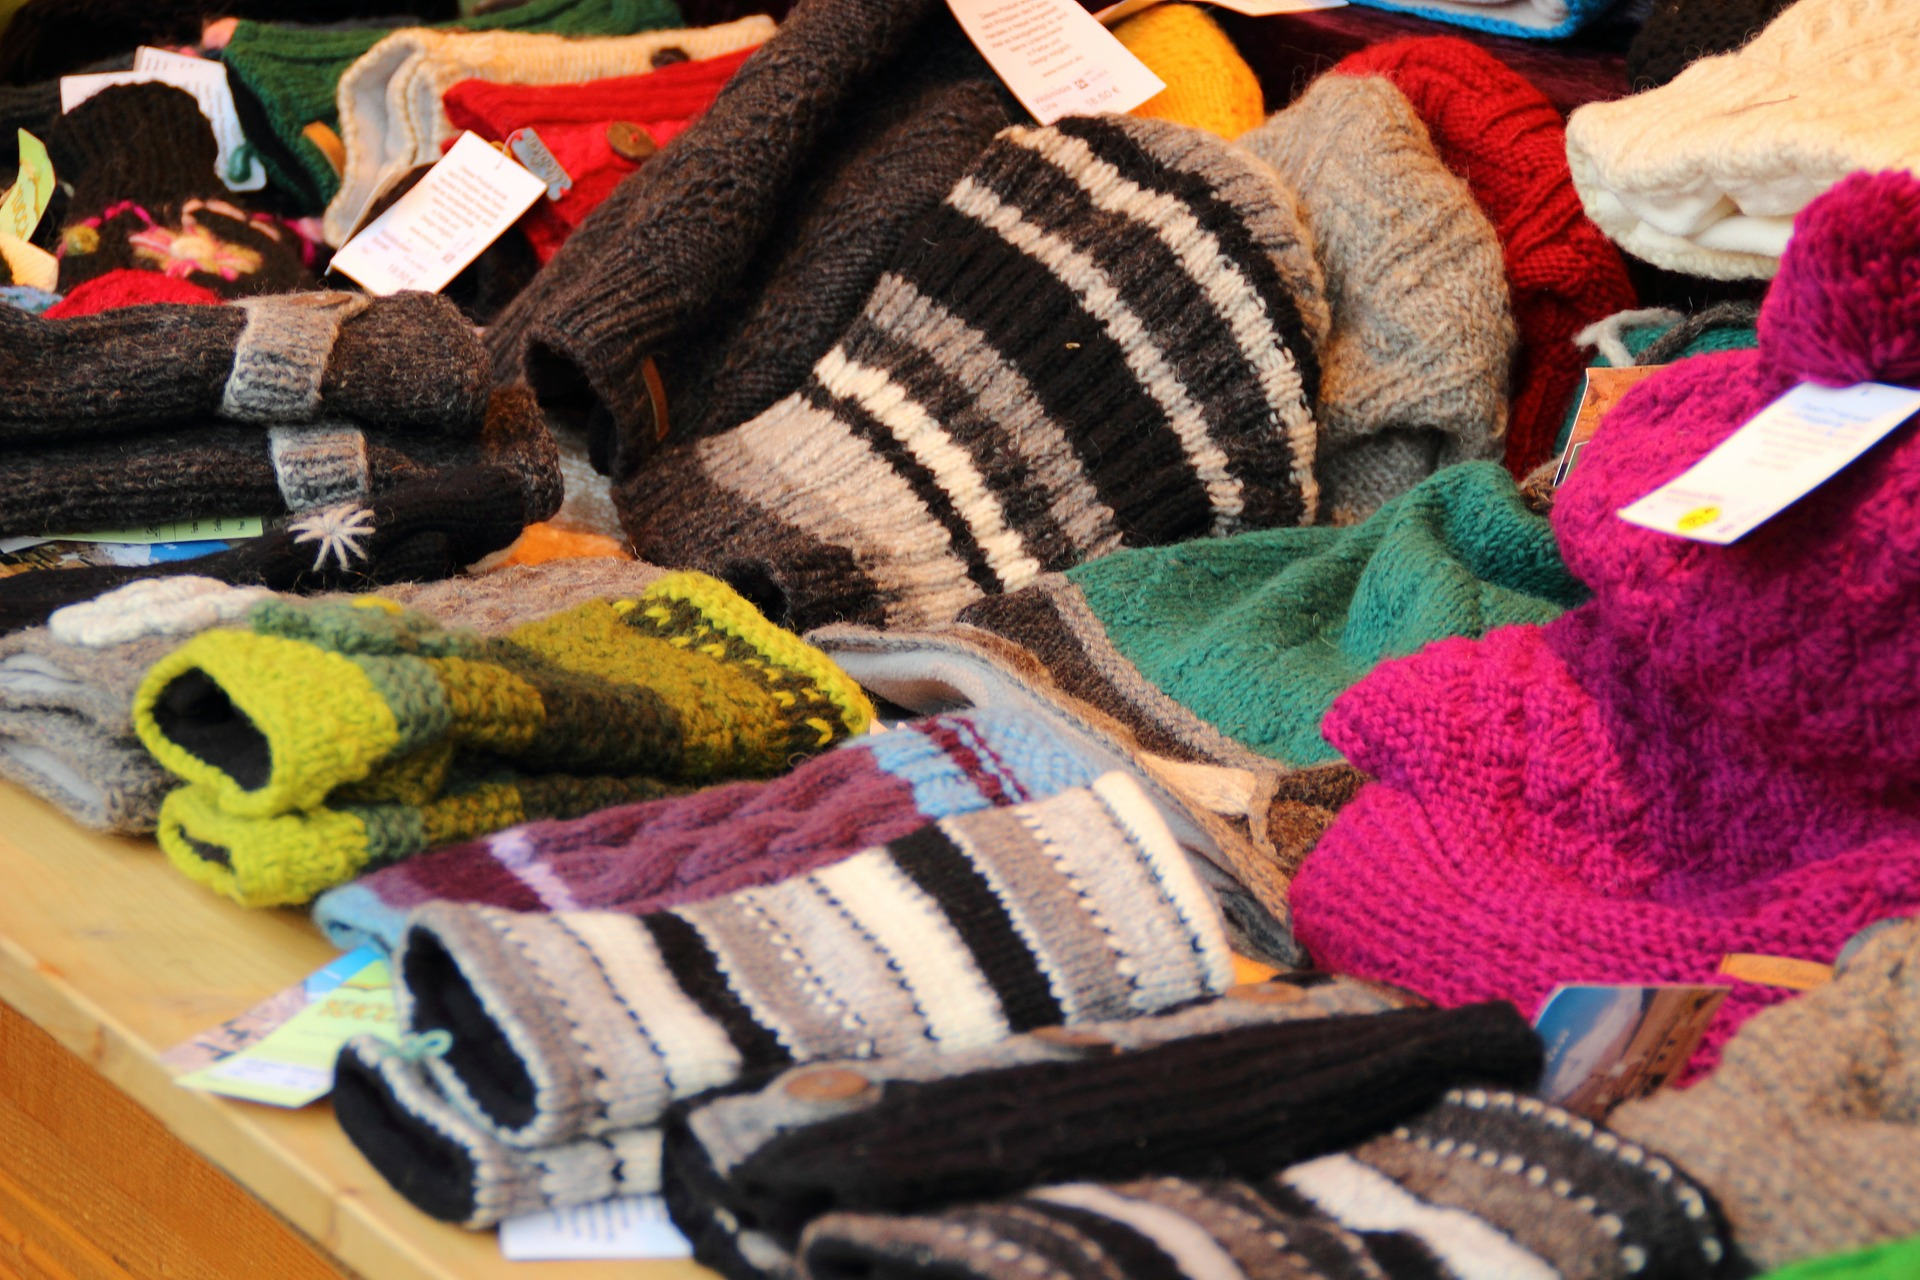 cold-weather accessories merchandising